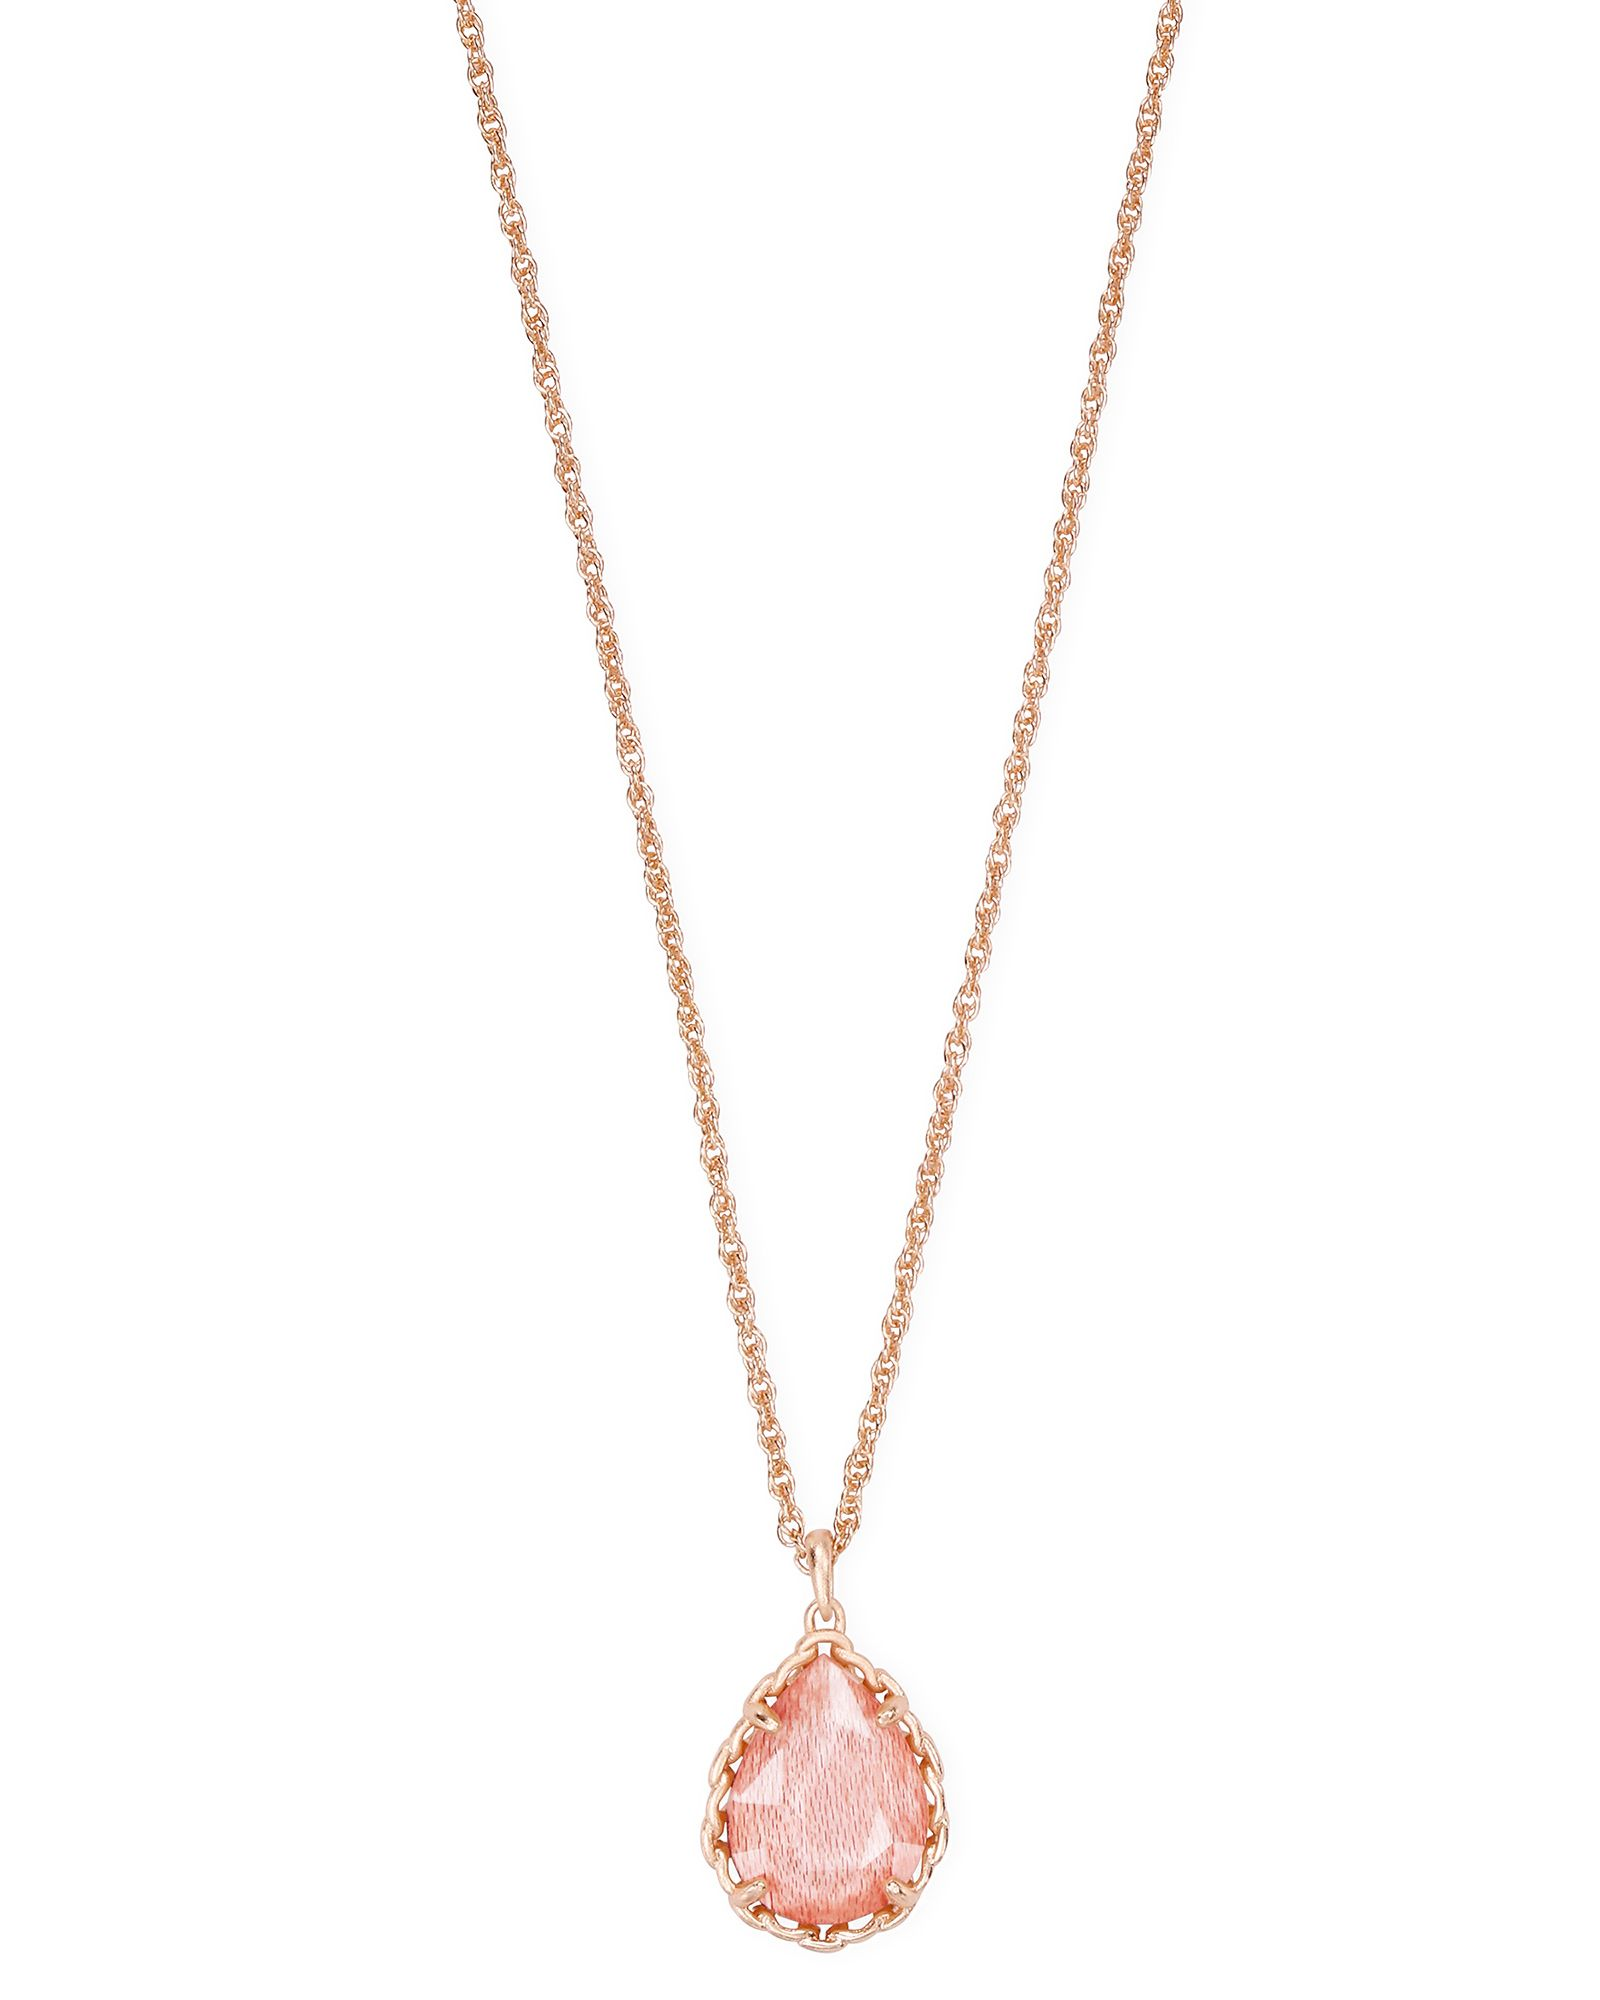 Macrame Dee Rose Gold Pendant Necklace In Blush Wood In 2020 Rose Gold Pendant Rose Gold Pendant Necklace Pink Necklace